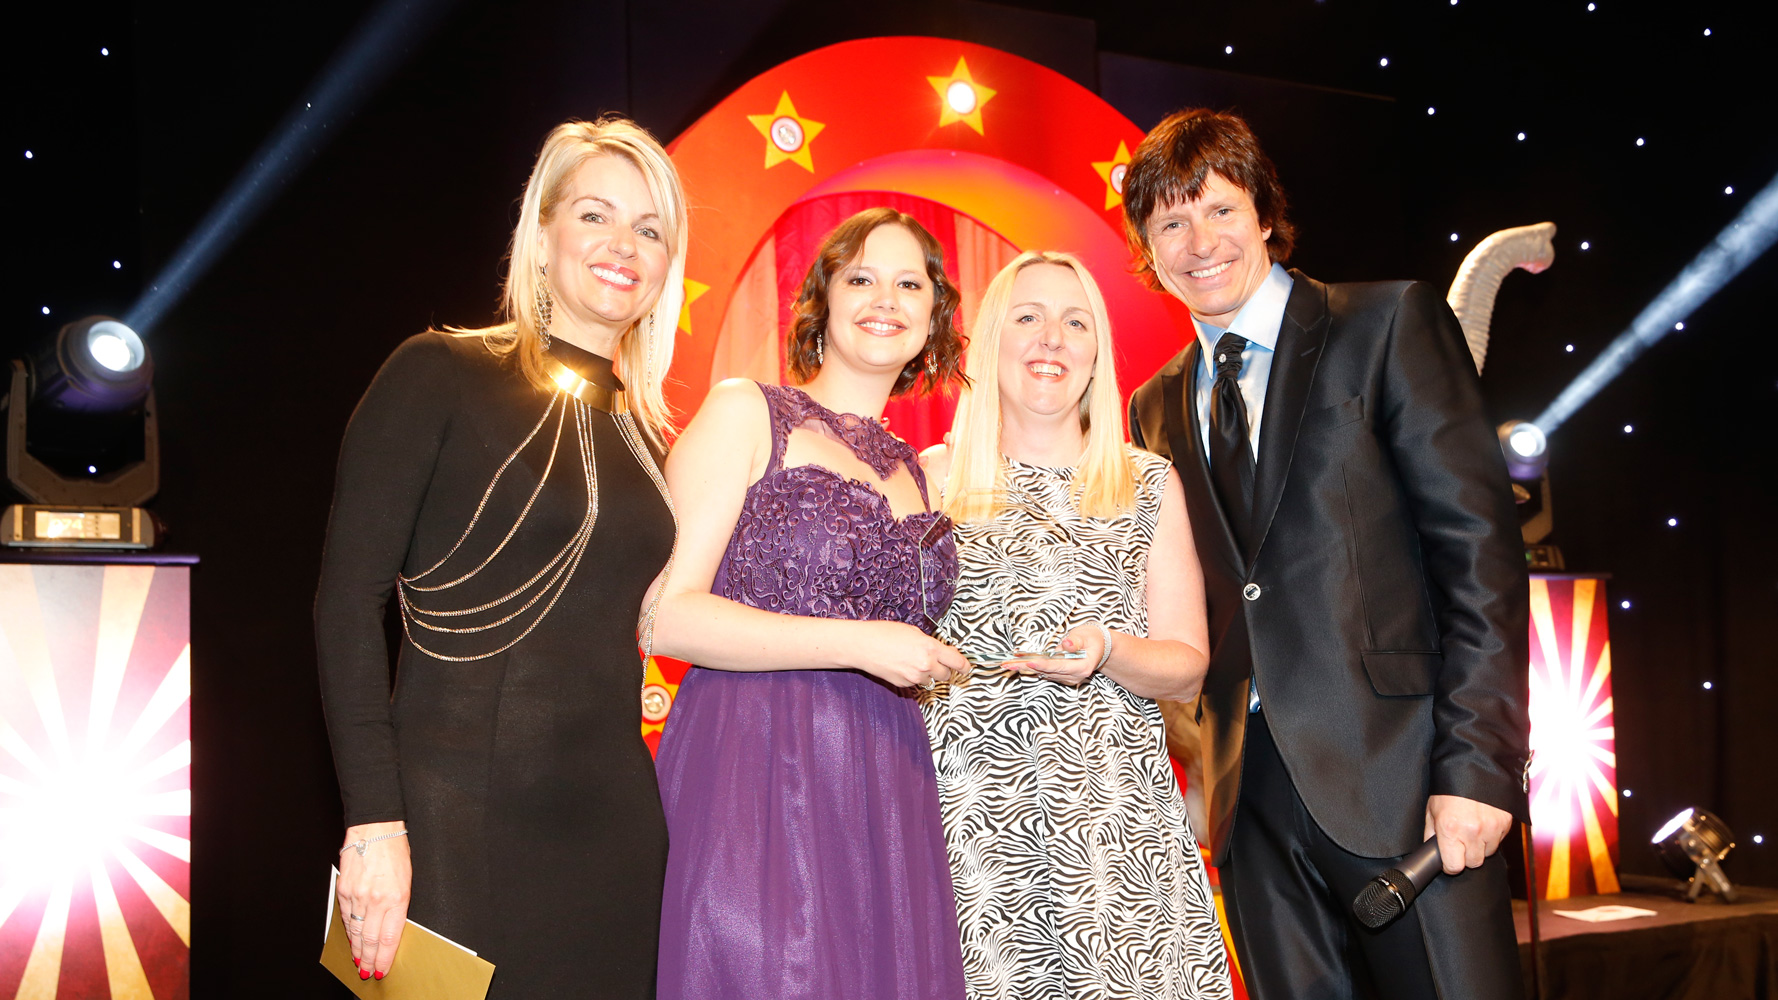 Carebase staff celebrate award success